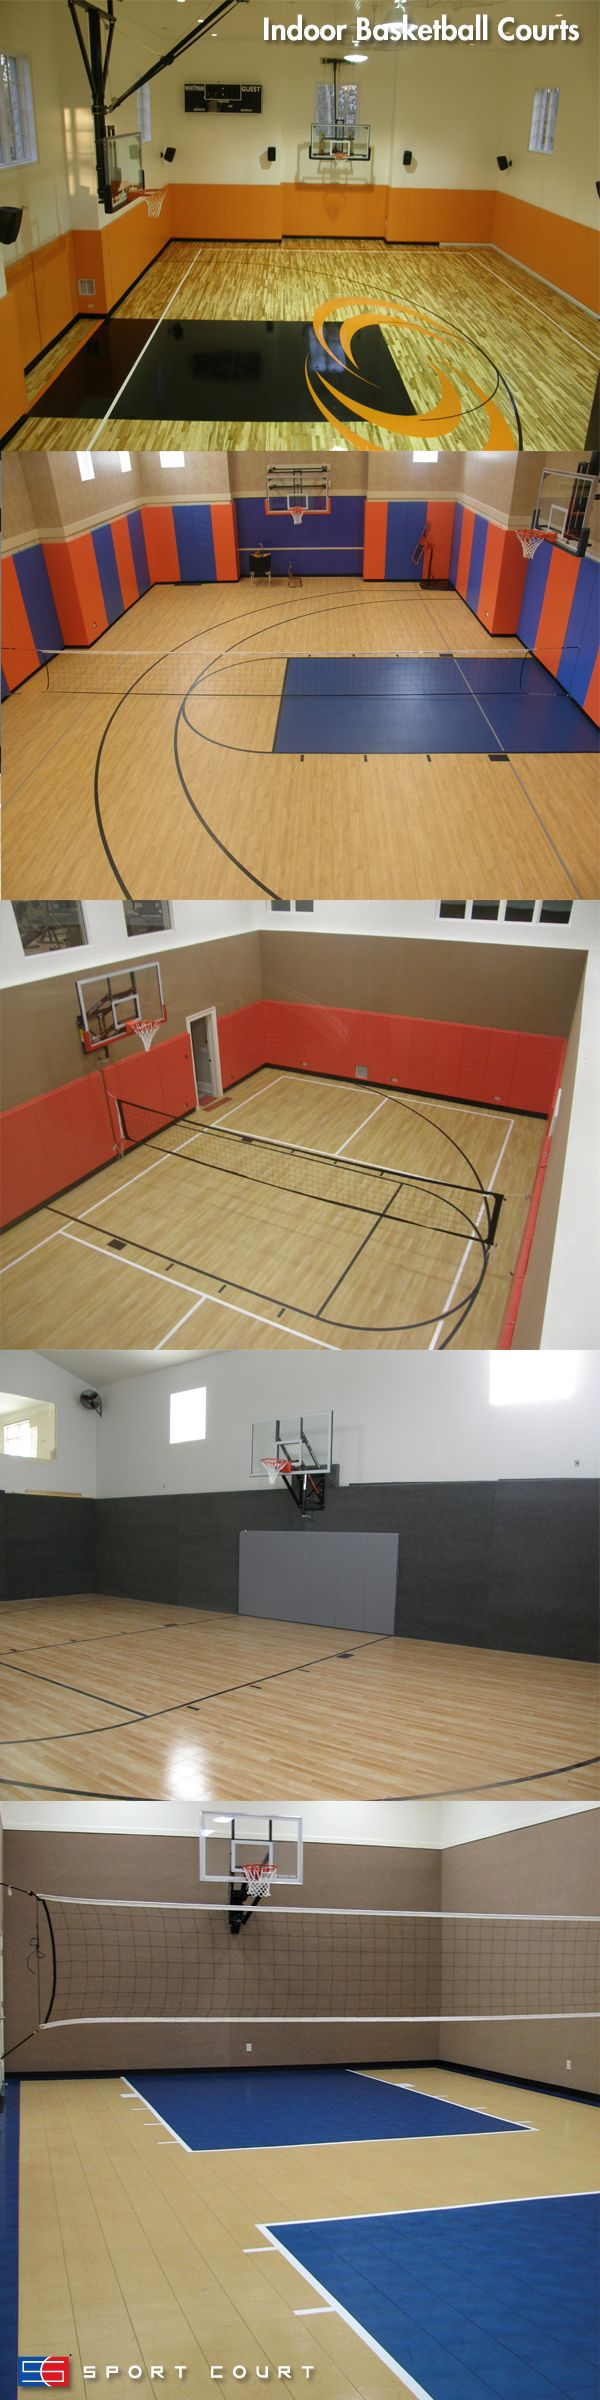 65 best sports court images on pinterest sports court for Buy indoor basketball court